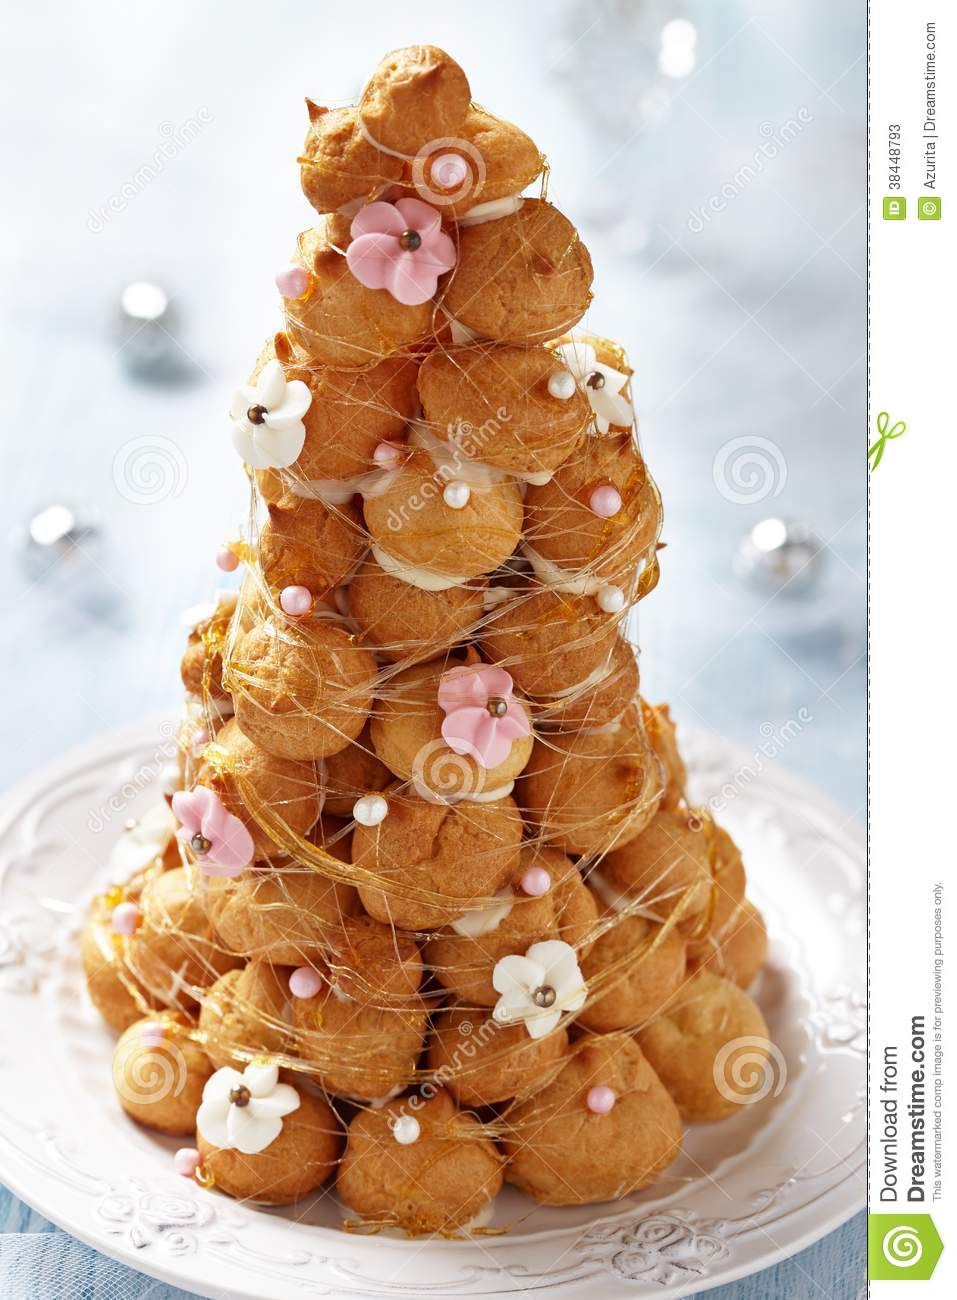 croquembouche with pink and white frosting roses stock